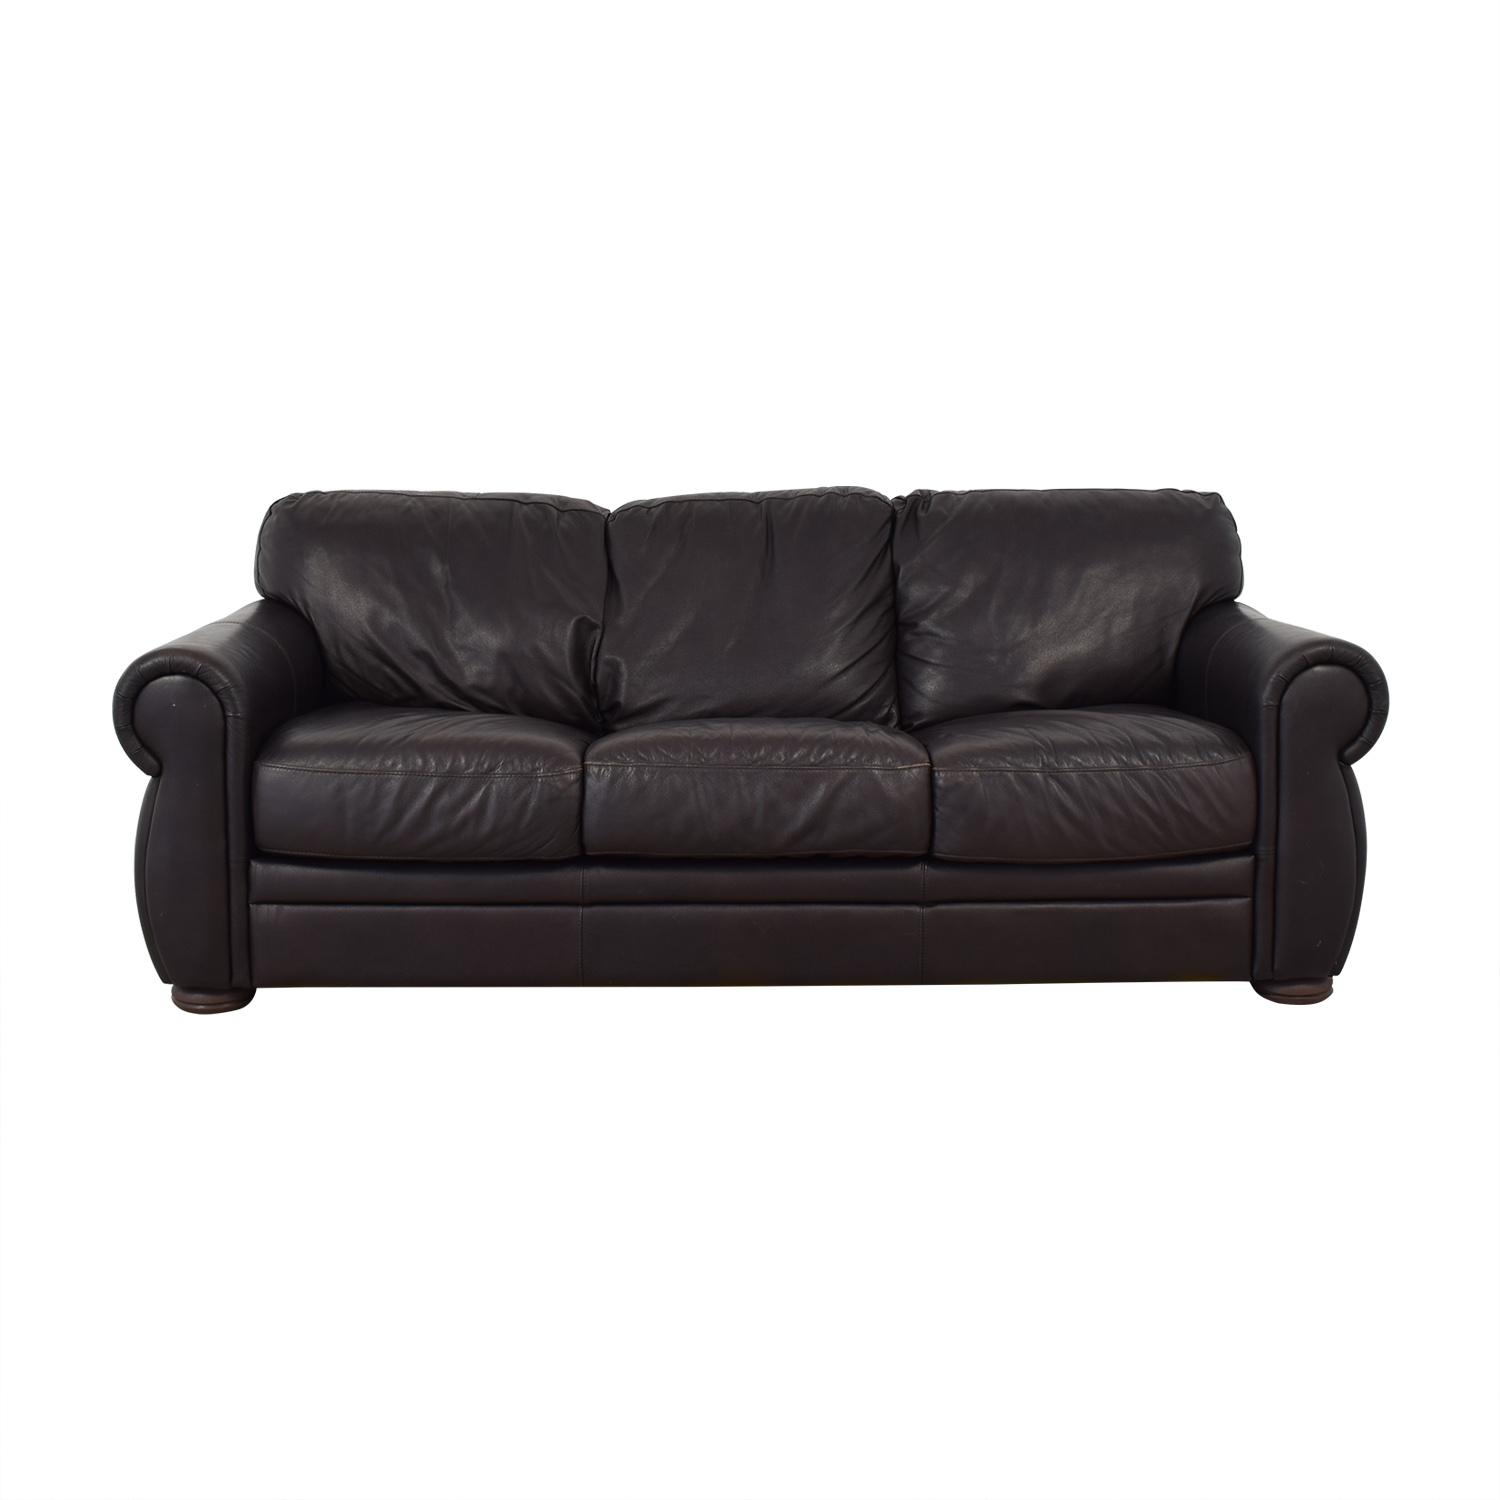 Raymour & Flanigan Raymour & Flanigan Leather Sleeper Sofa second hand